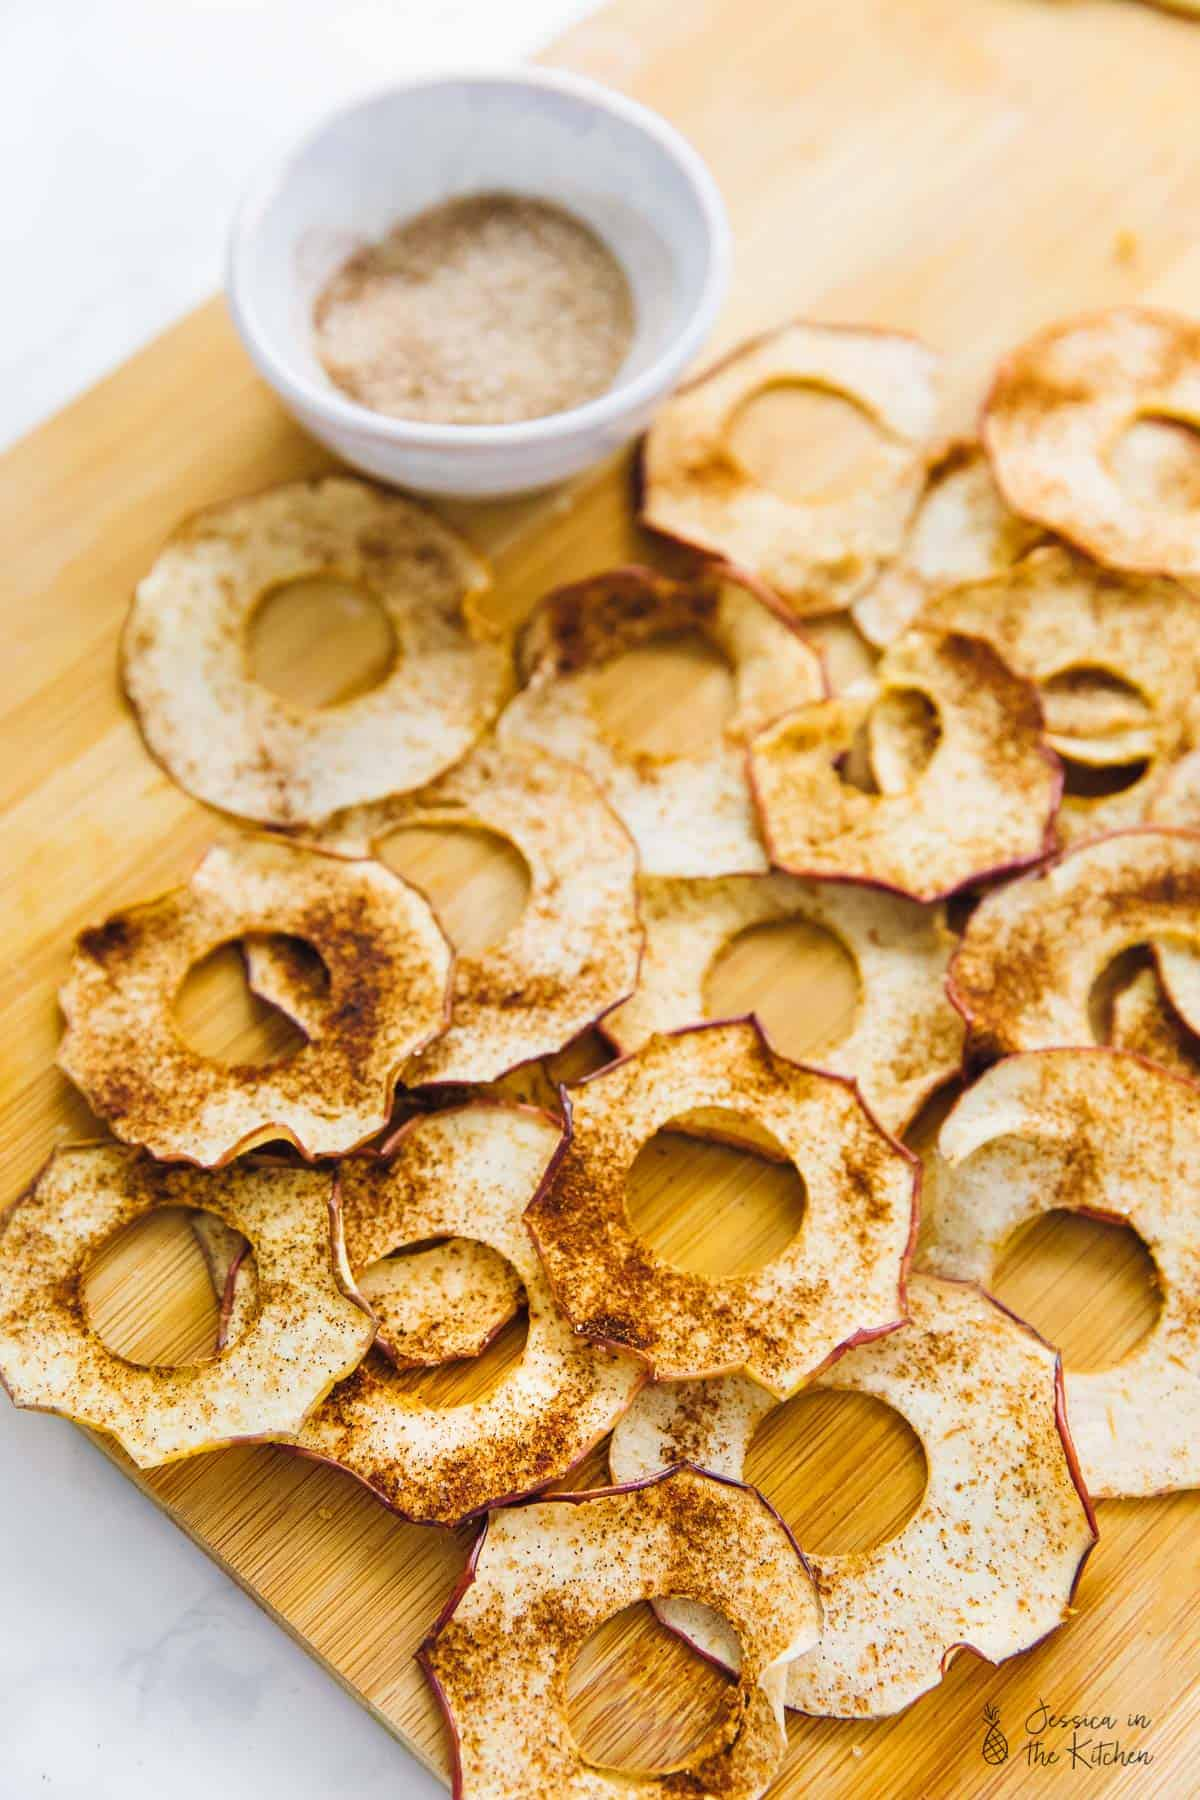 These Cinnamon Apple Chips are the perfect crispy and crunchy fall snack! They're easy to make, budget friendly and satisfy your sweet tooth! via https://jessicainthekitchen.com